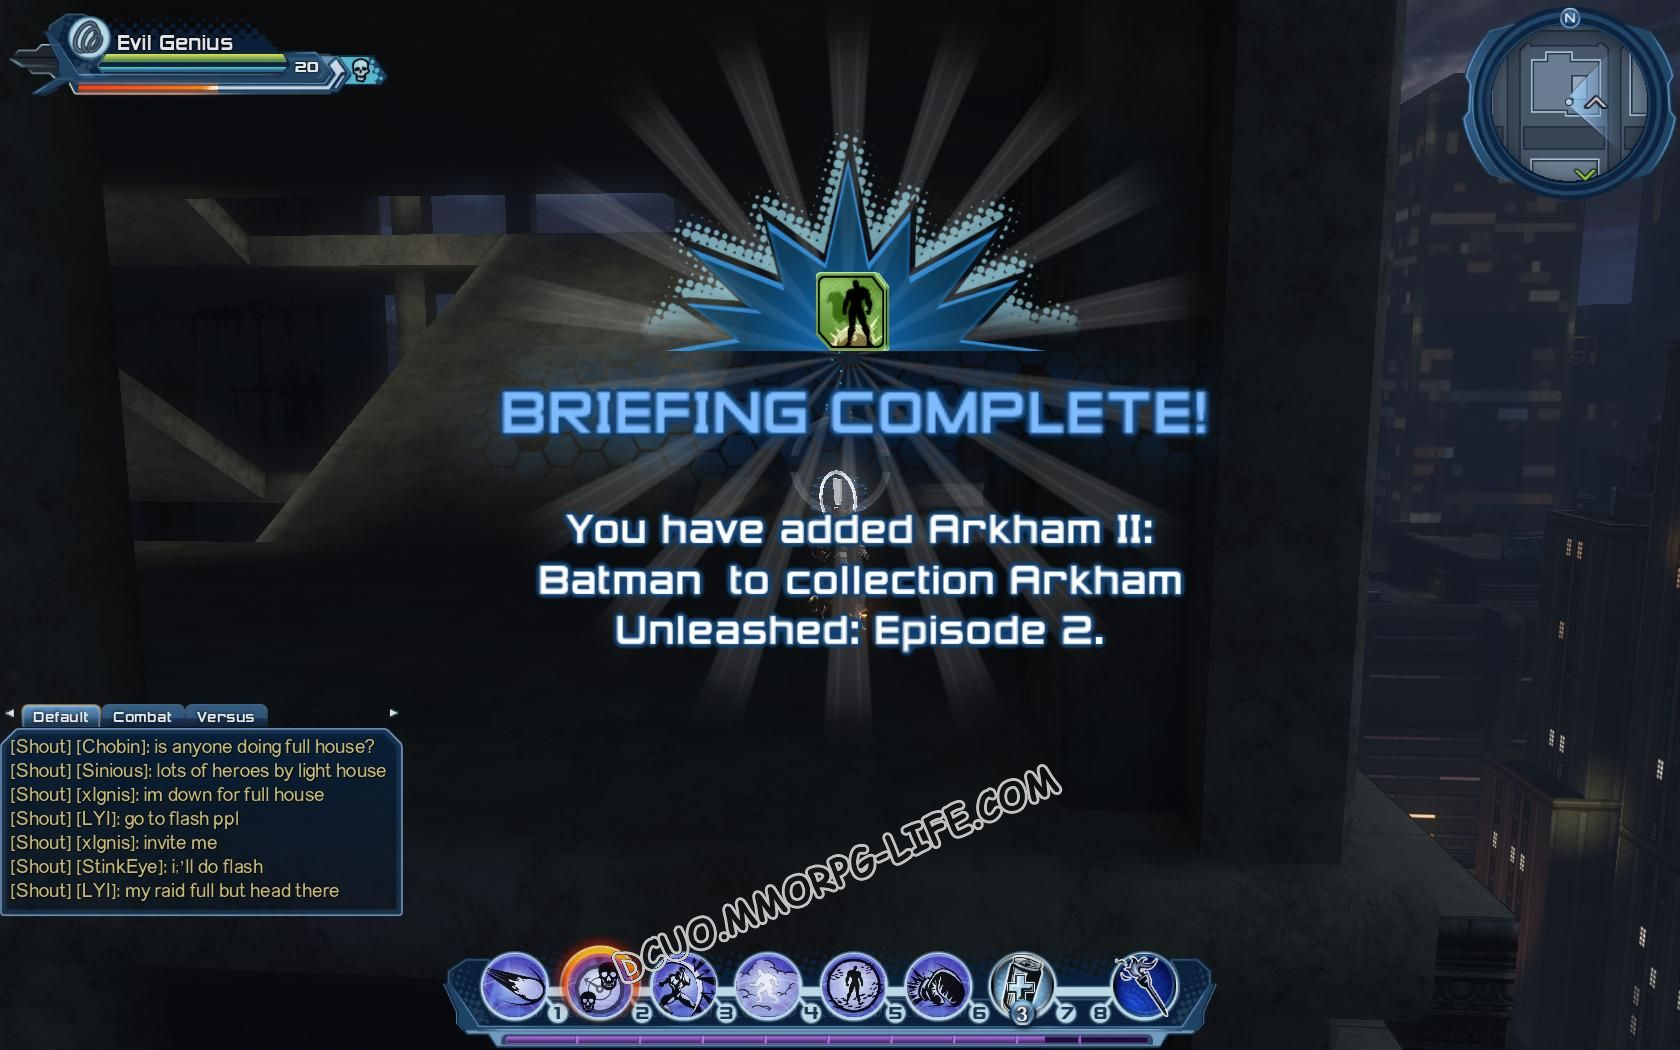 Briefing: Arkham Unleashed: Episode 2, step 5 Arkham II: Batman  image 729 middle size